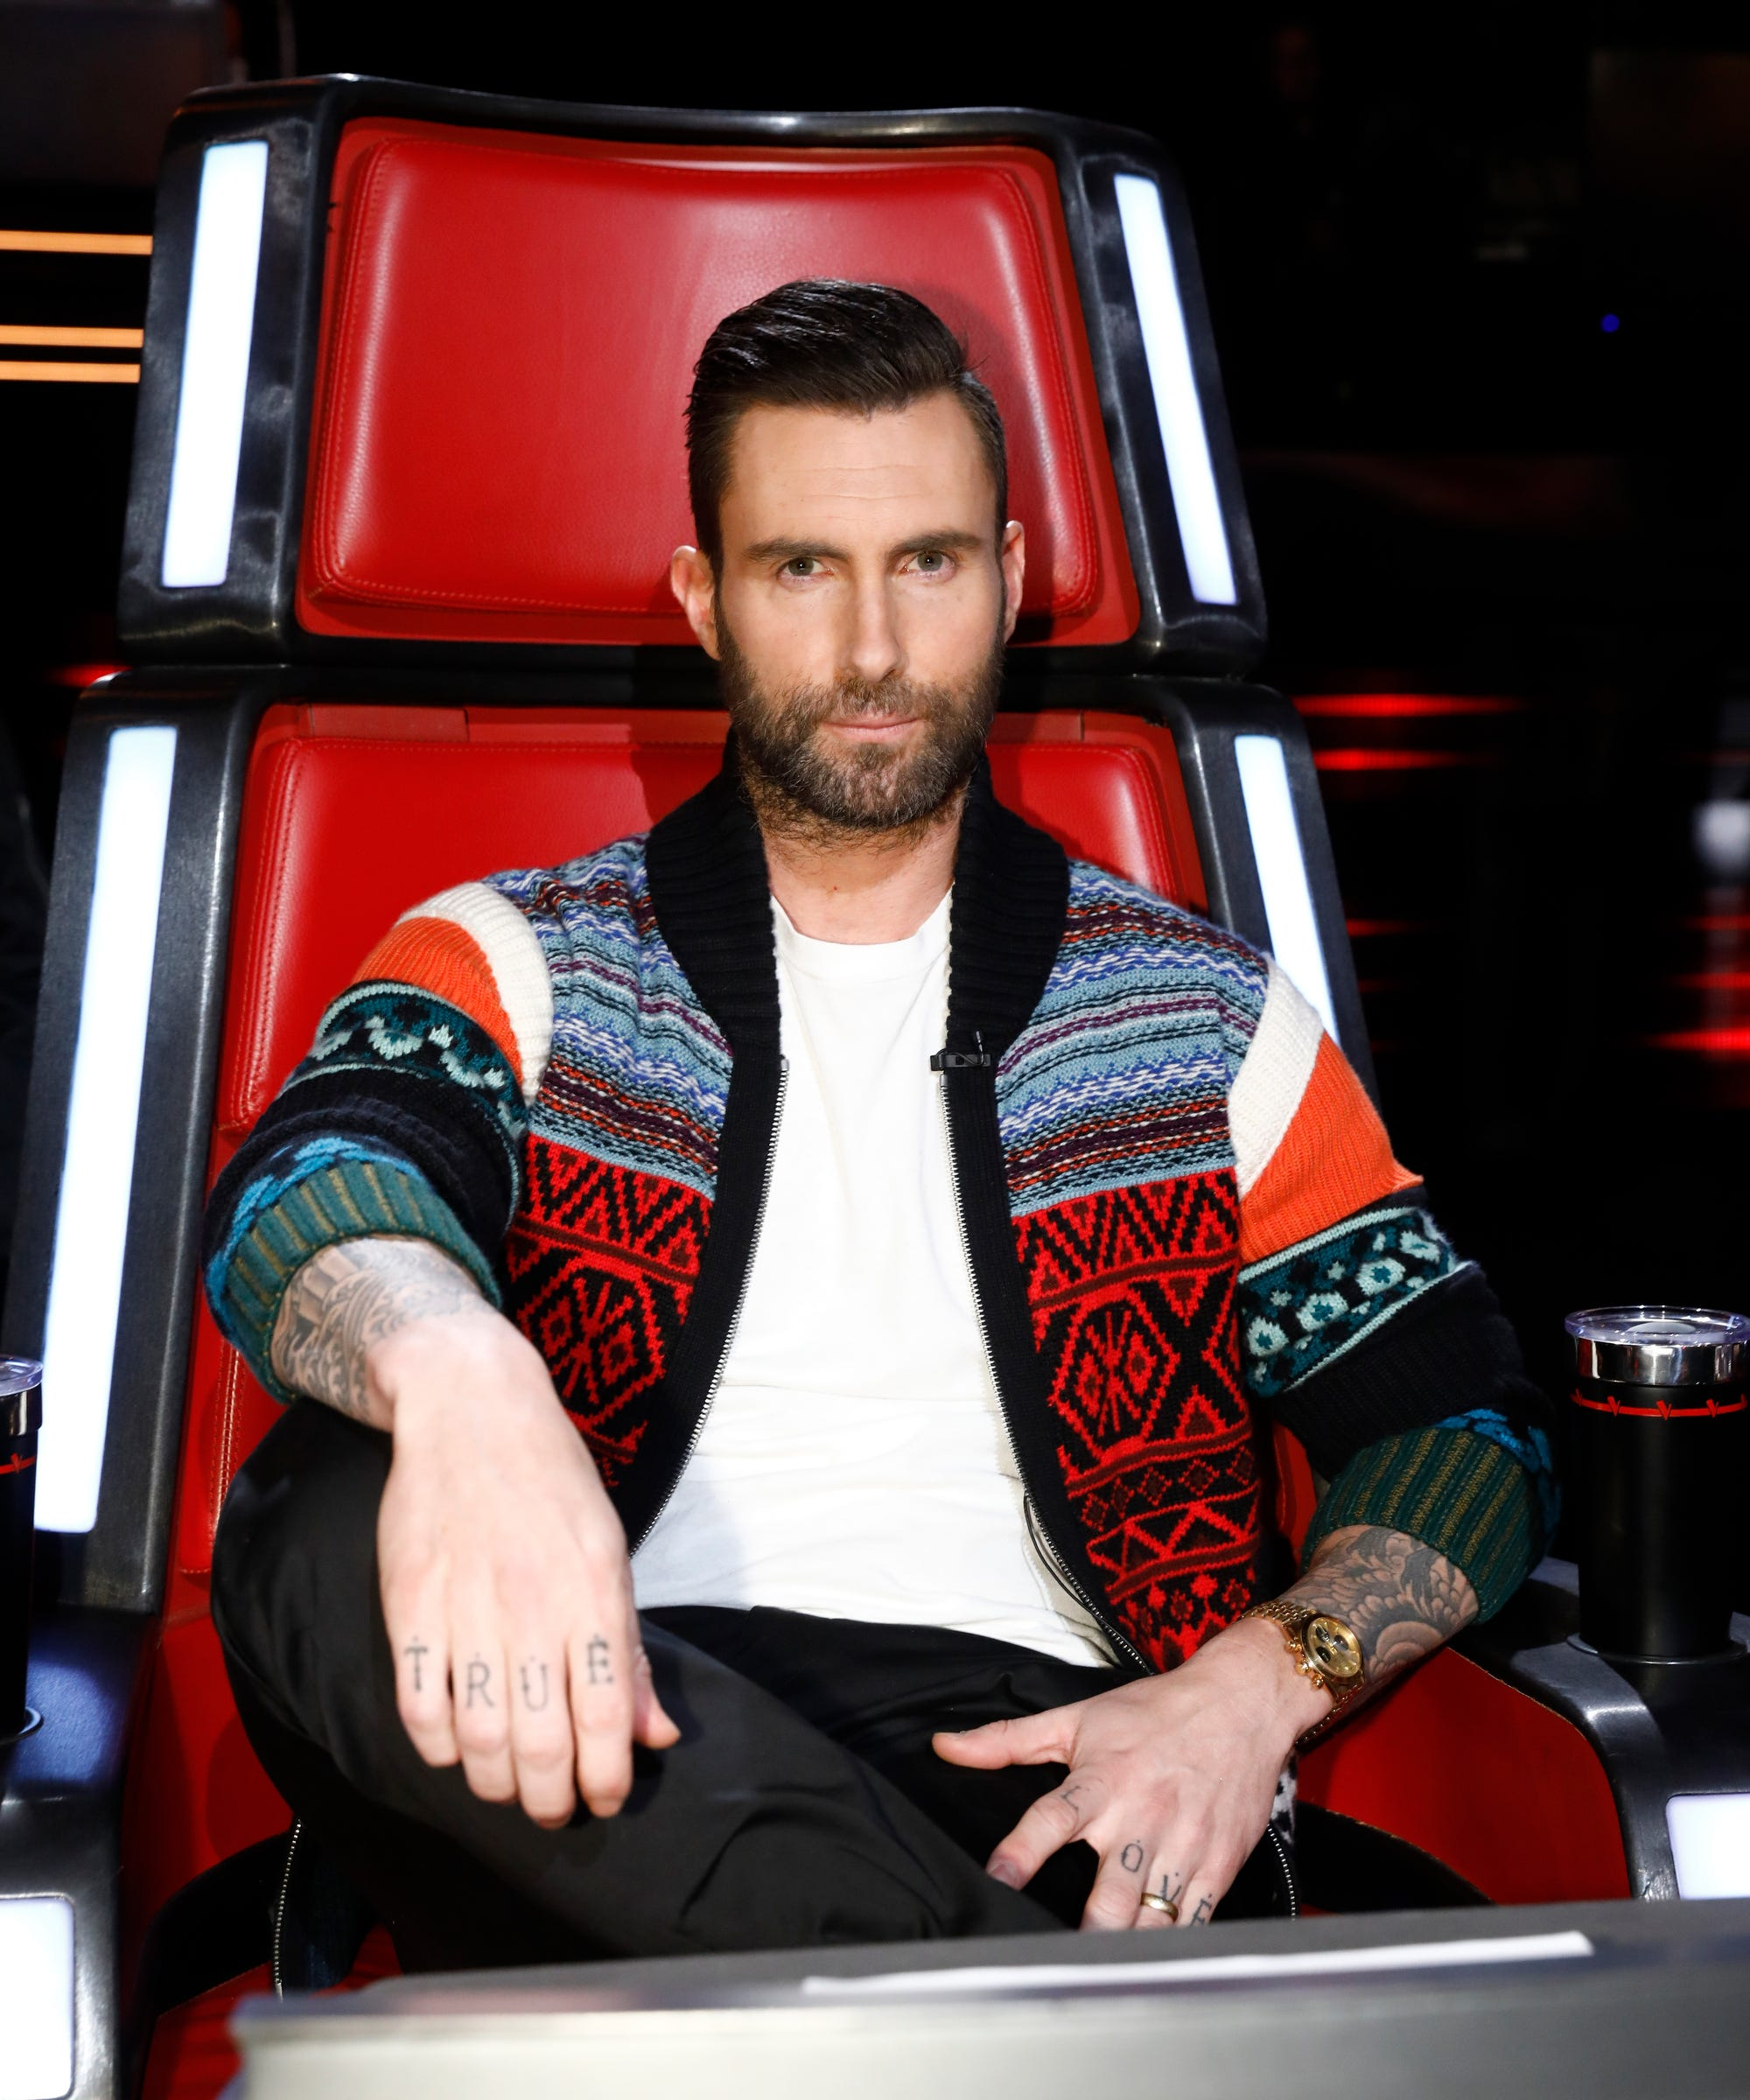 Adam Levine's Surprise Exit From The Voice Sparks Rumors